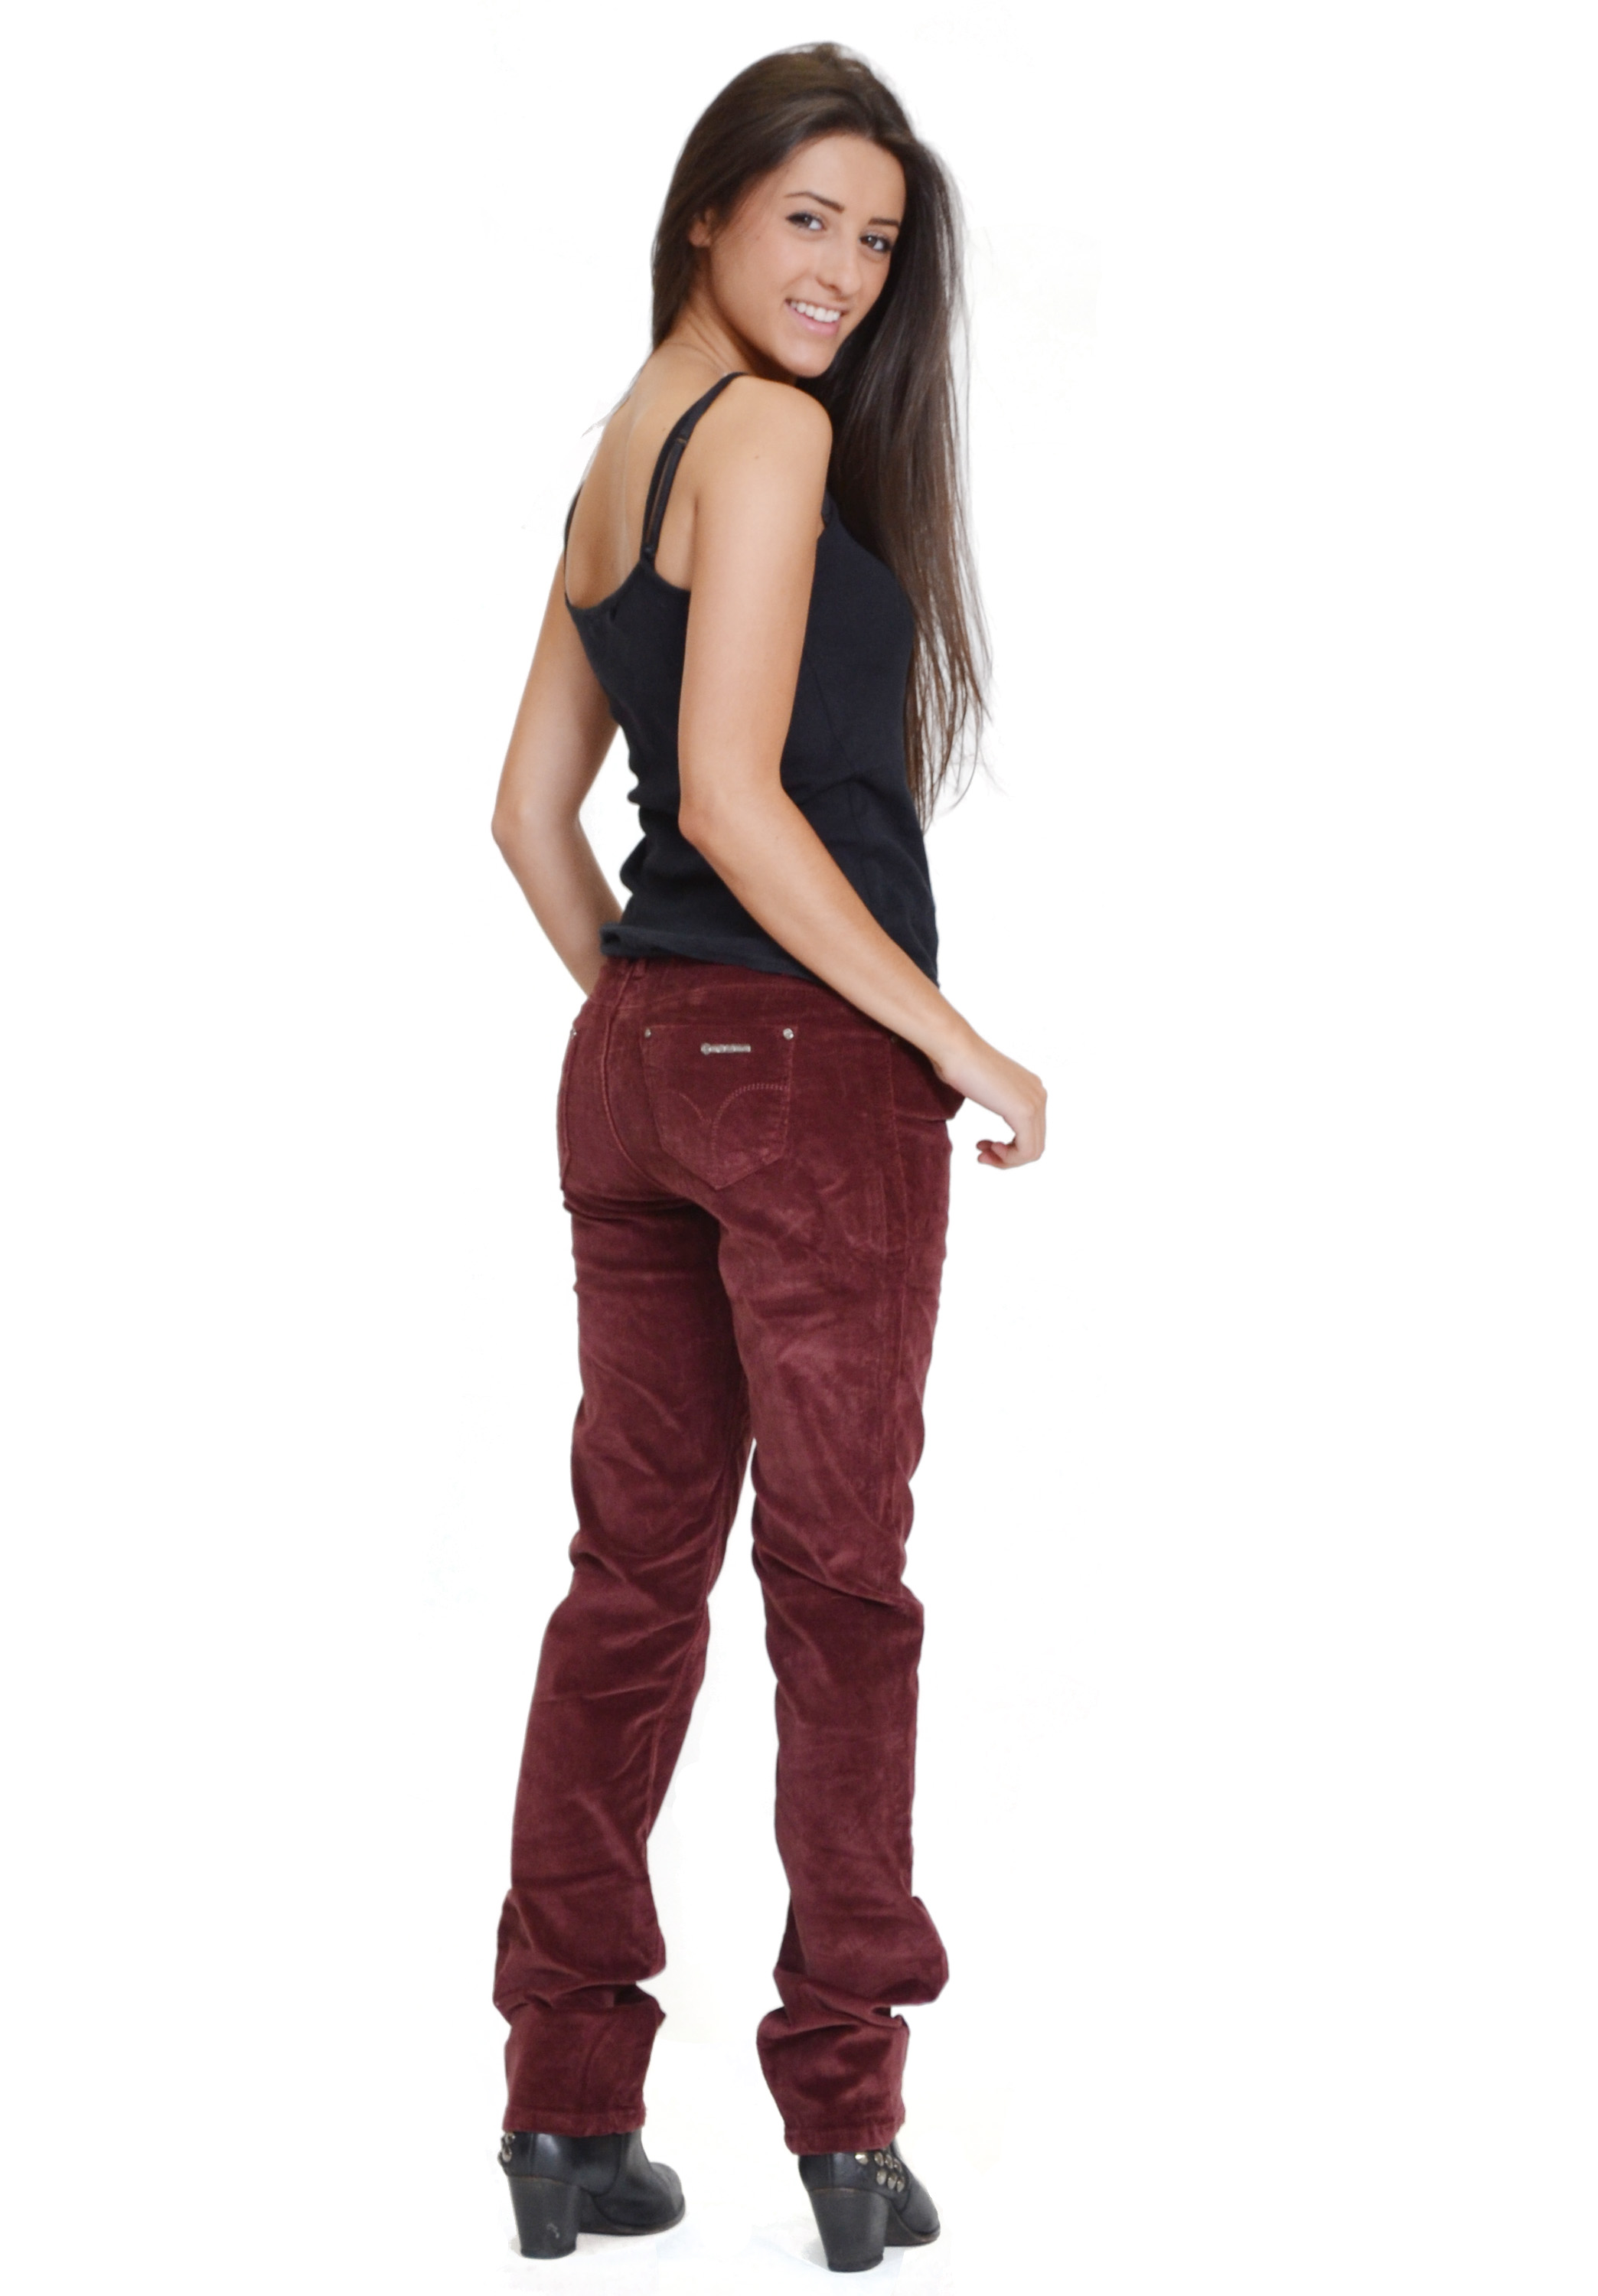 Reinvent your looks this season with the hip texture of Old Navy corduroy pants for women. Trendy Styles with a Textured Finish. The all-American dress code has been kicked up a .